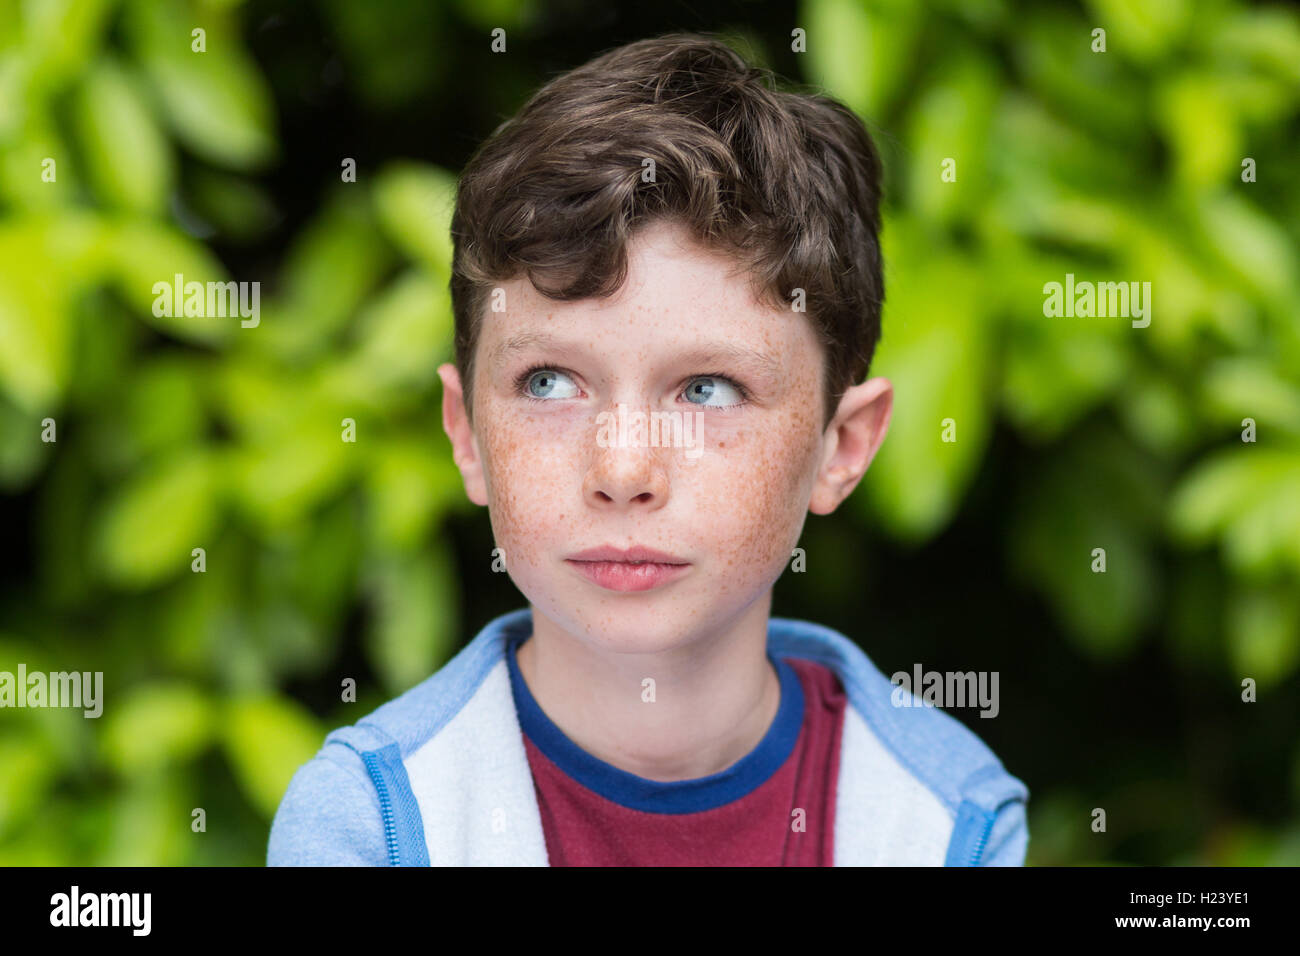 10 Years Old Stock Photos & 10 Years Old Stock Images